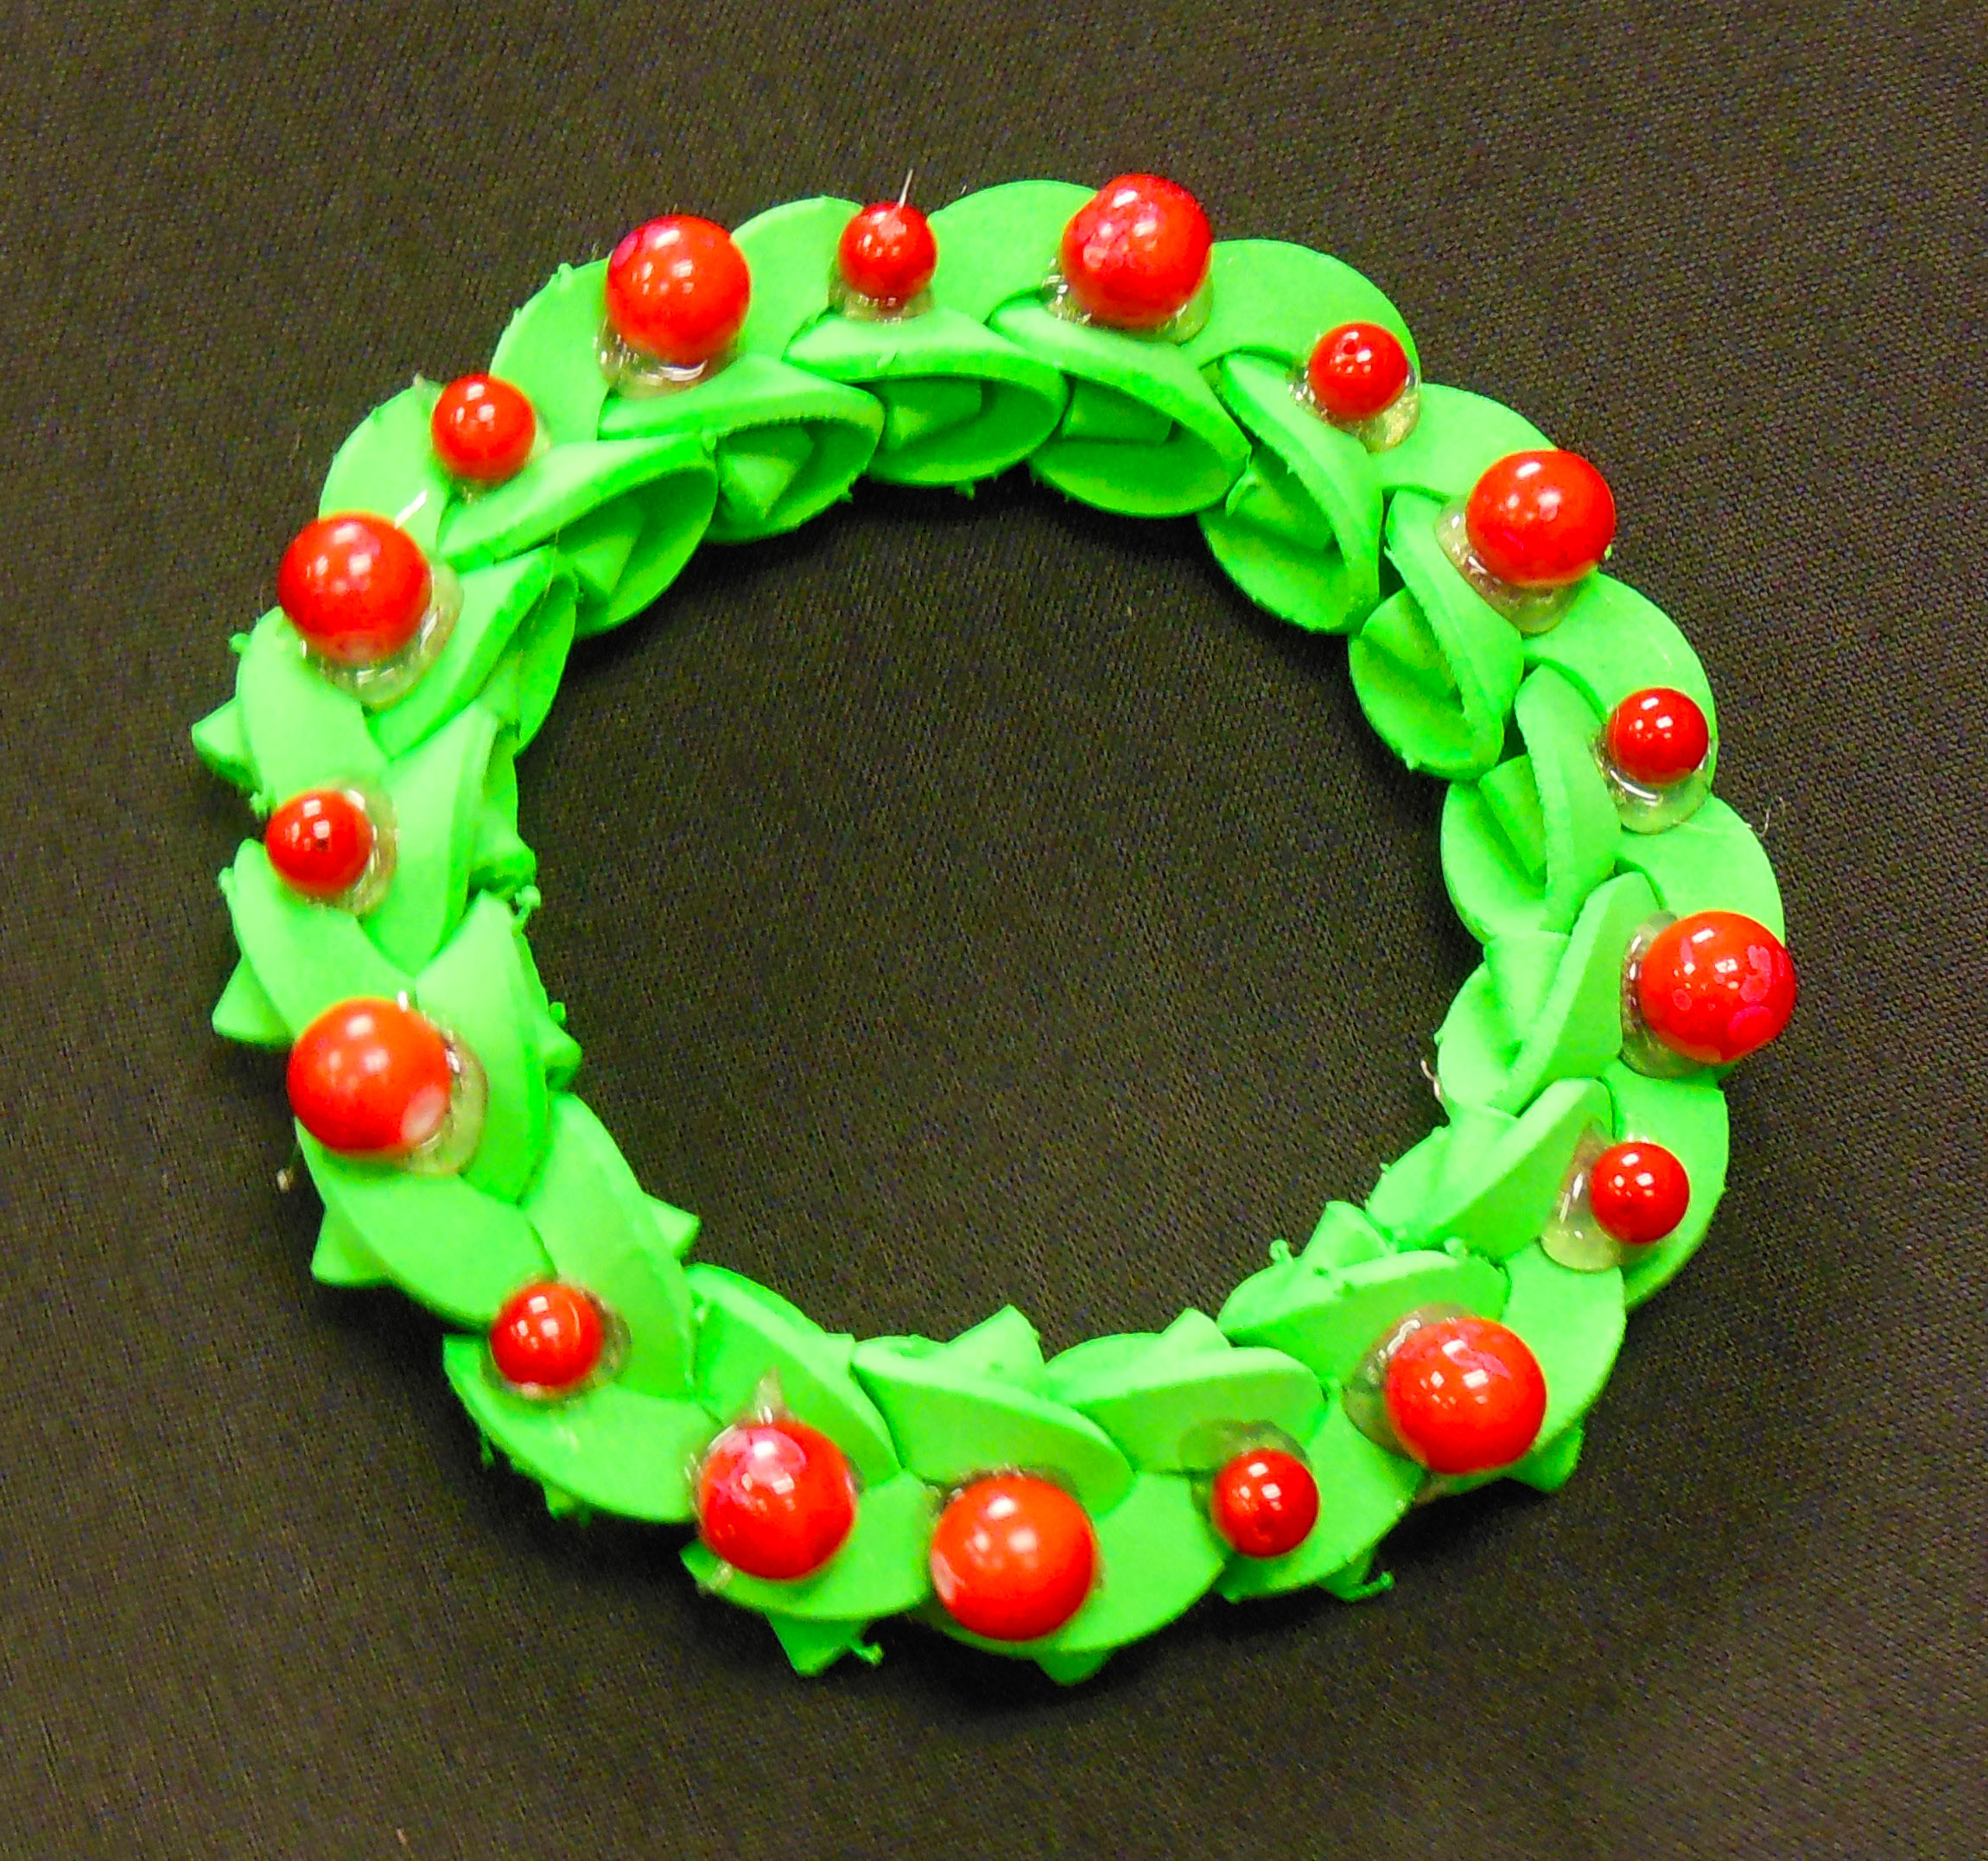 Picture of Foam Ring Decorations